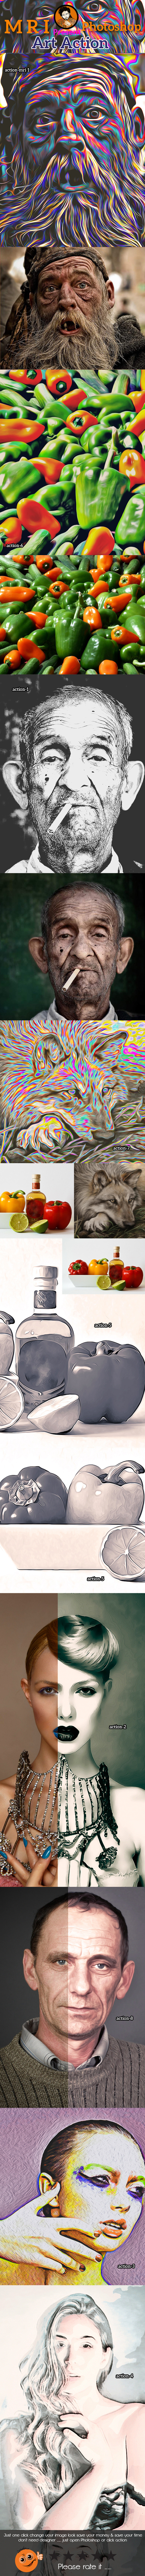 GraphicRiver Oil Art Action 9693907